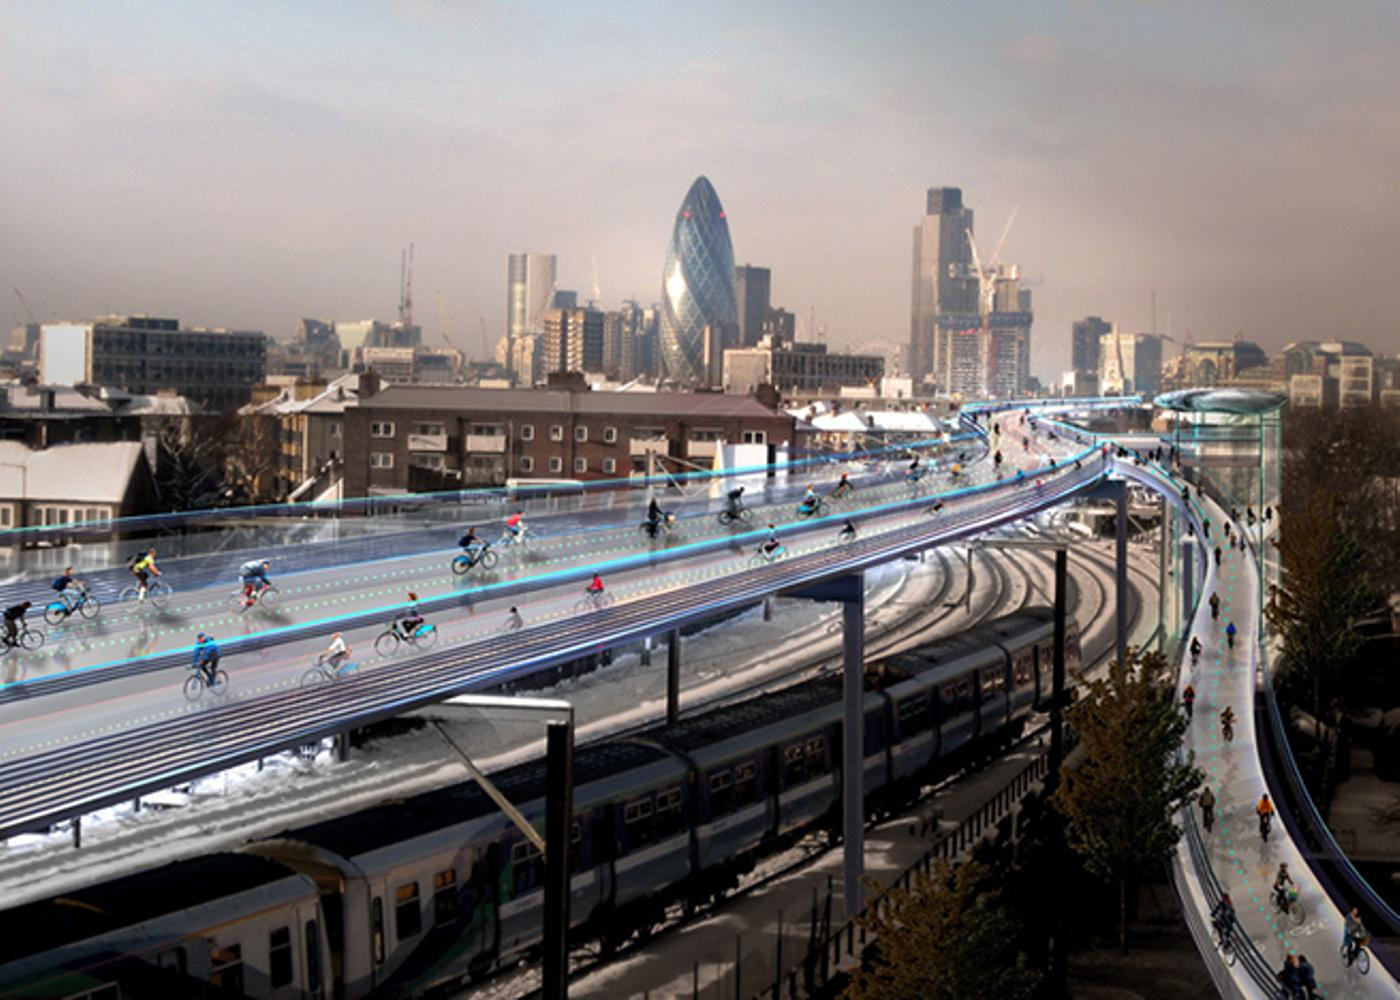 Norman Foster's Vision for a More Cycling-Friendly London